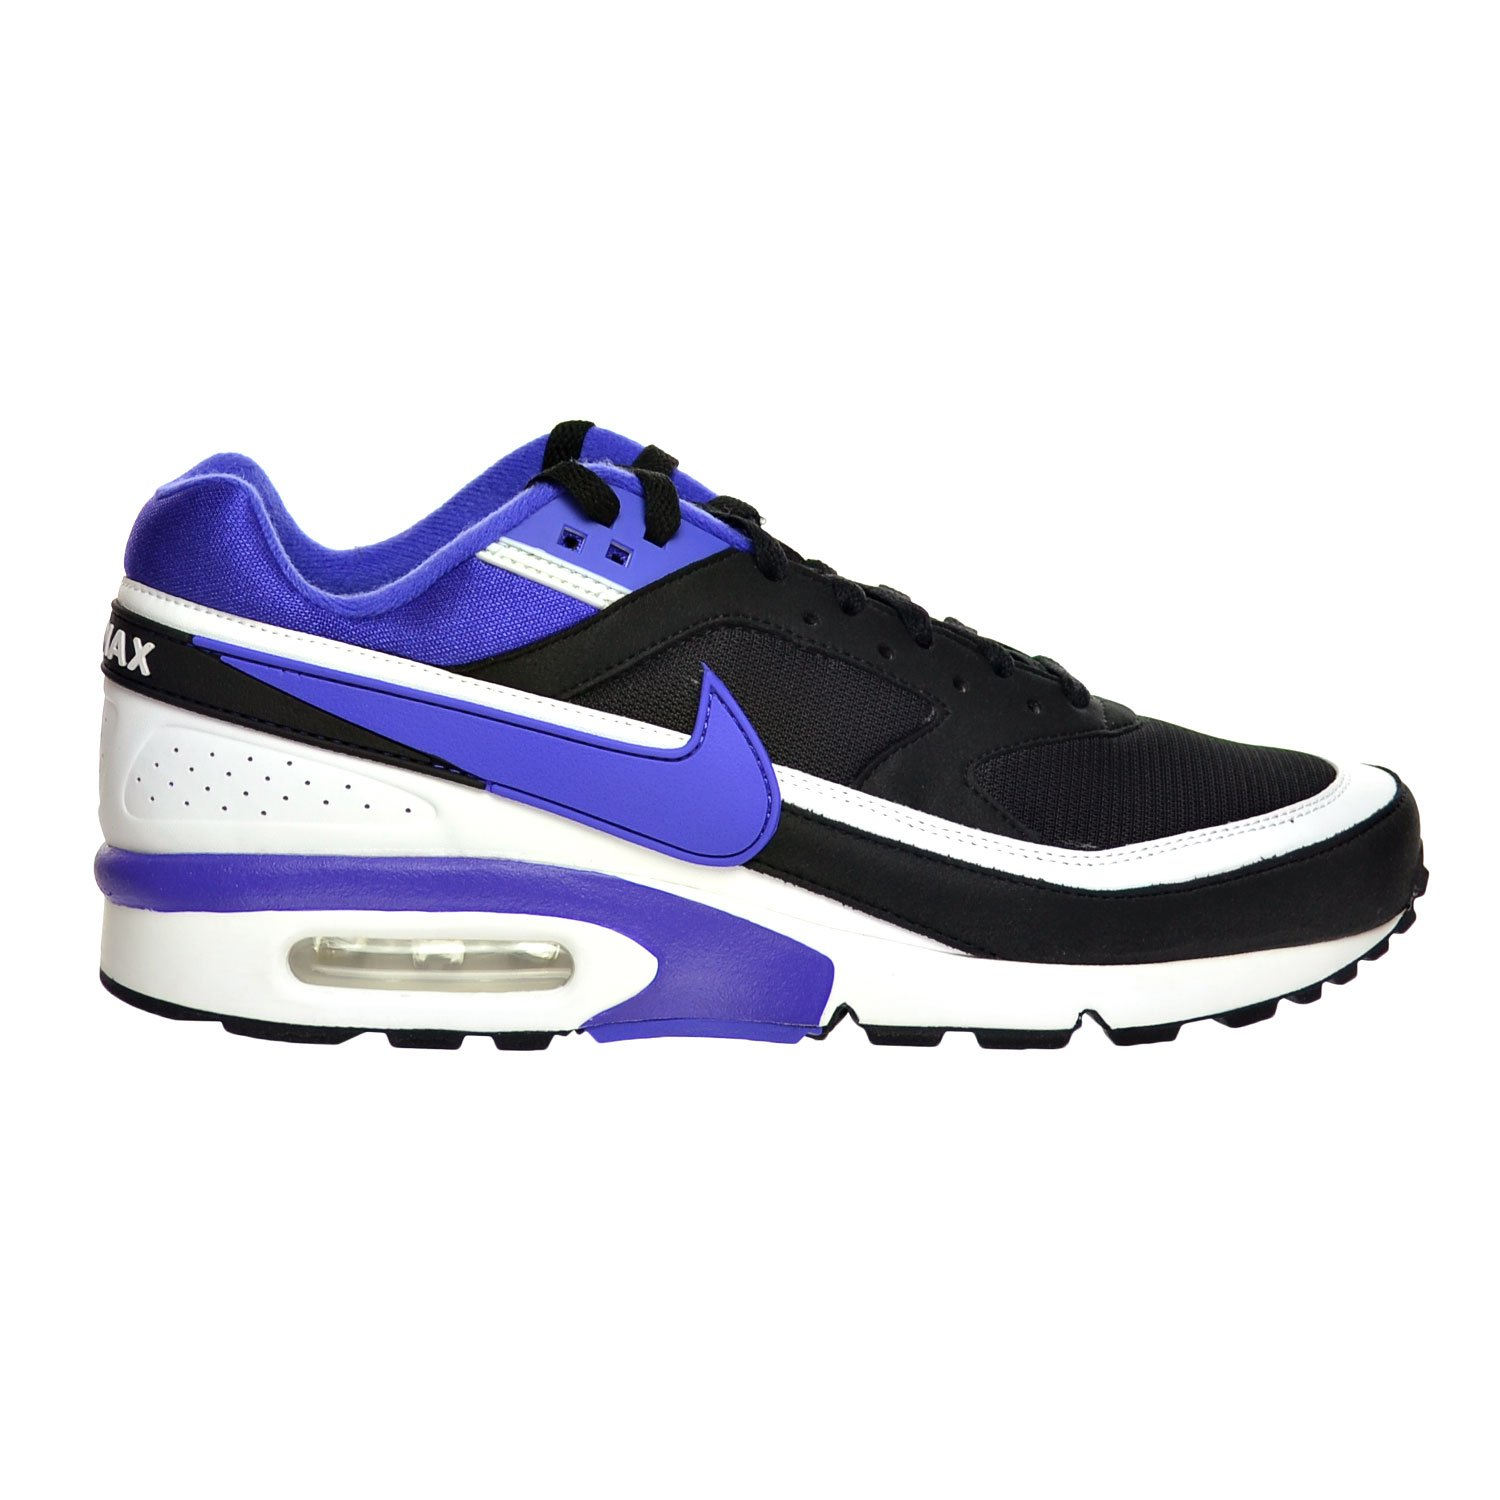 finest selection 02e84 17d58 Amazon.com   Nike Air Max BW OG Men s Shoes Black Persian Violet White  819522-051 (9.5 D(M) US)   Basketball